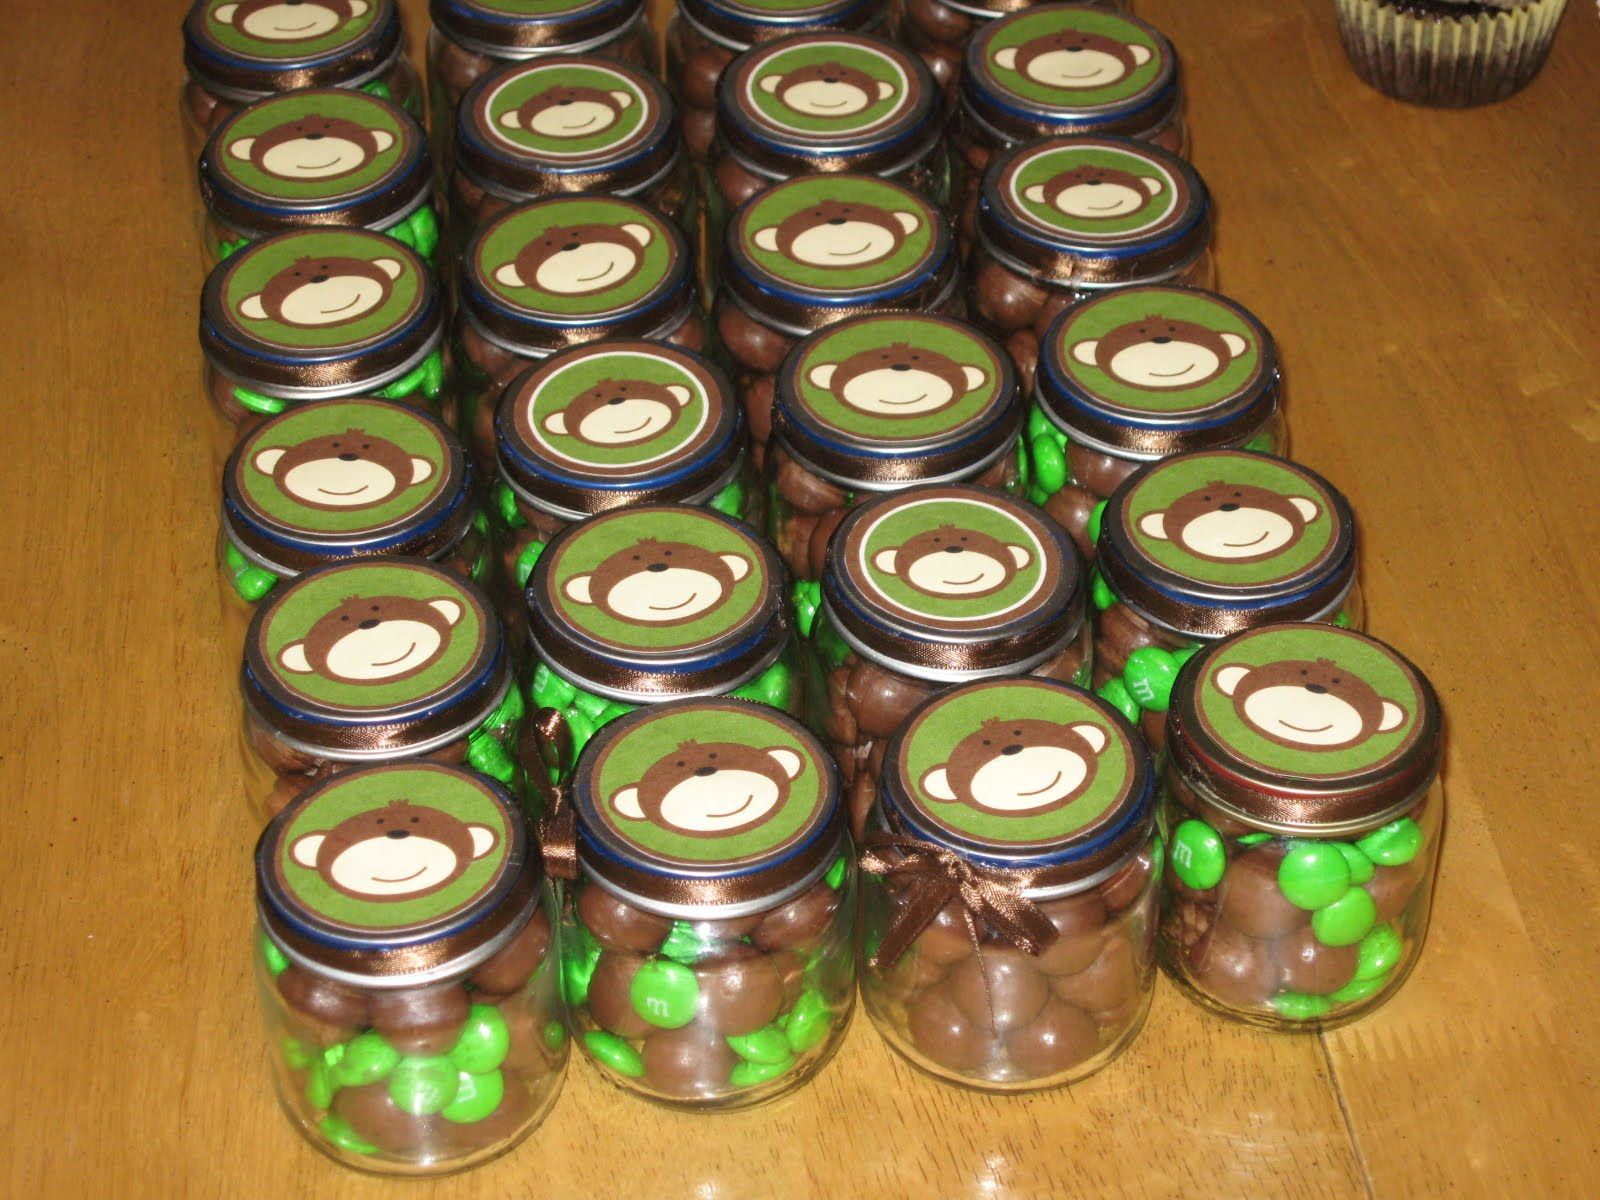 Baby shower themes recycled baby food jars turned party favor baby shower themes recycled baby food jars turned party favor thanks crafto solutioingenieria Choice Image